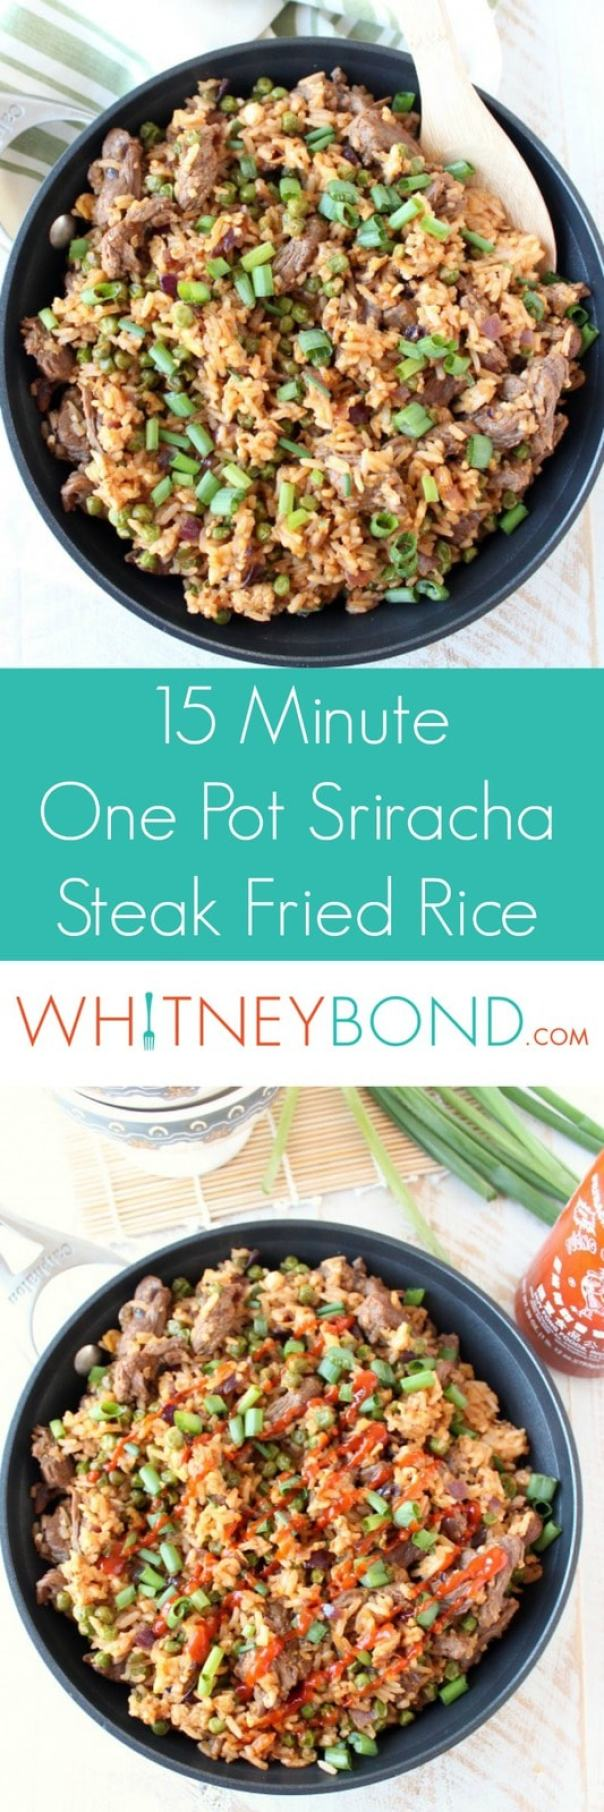 15 Minute One-Pot Sriracha Steak Fried Rice Recipe